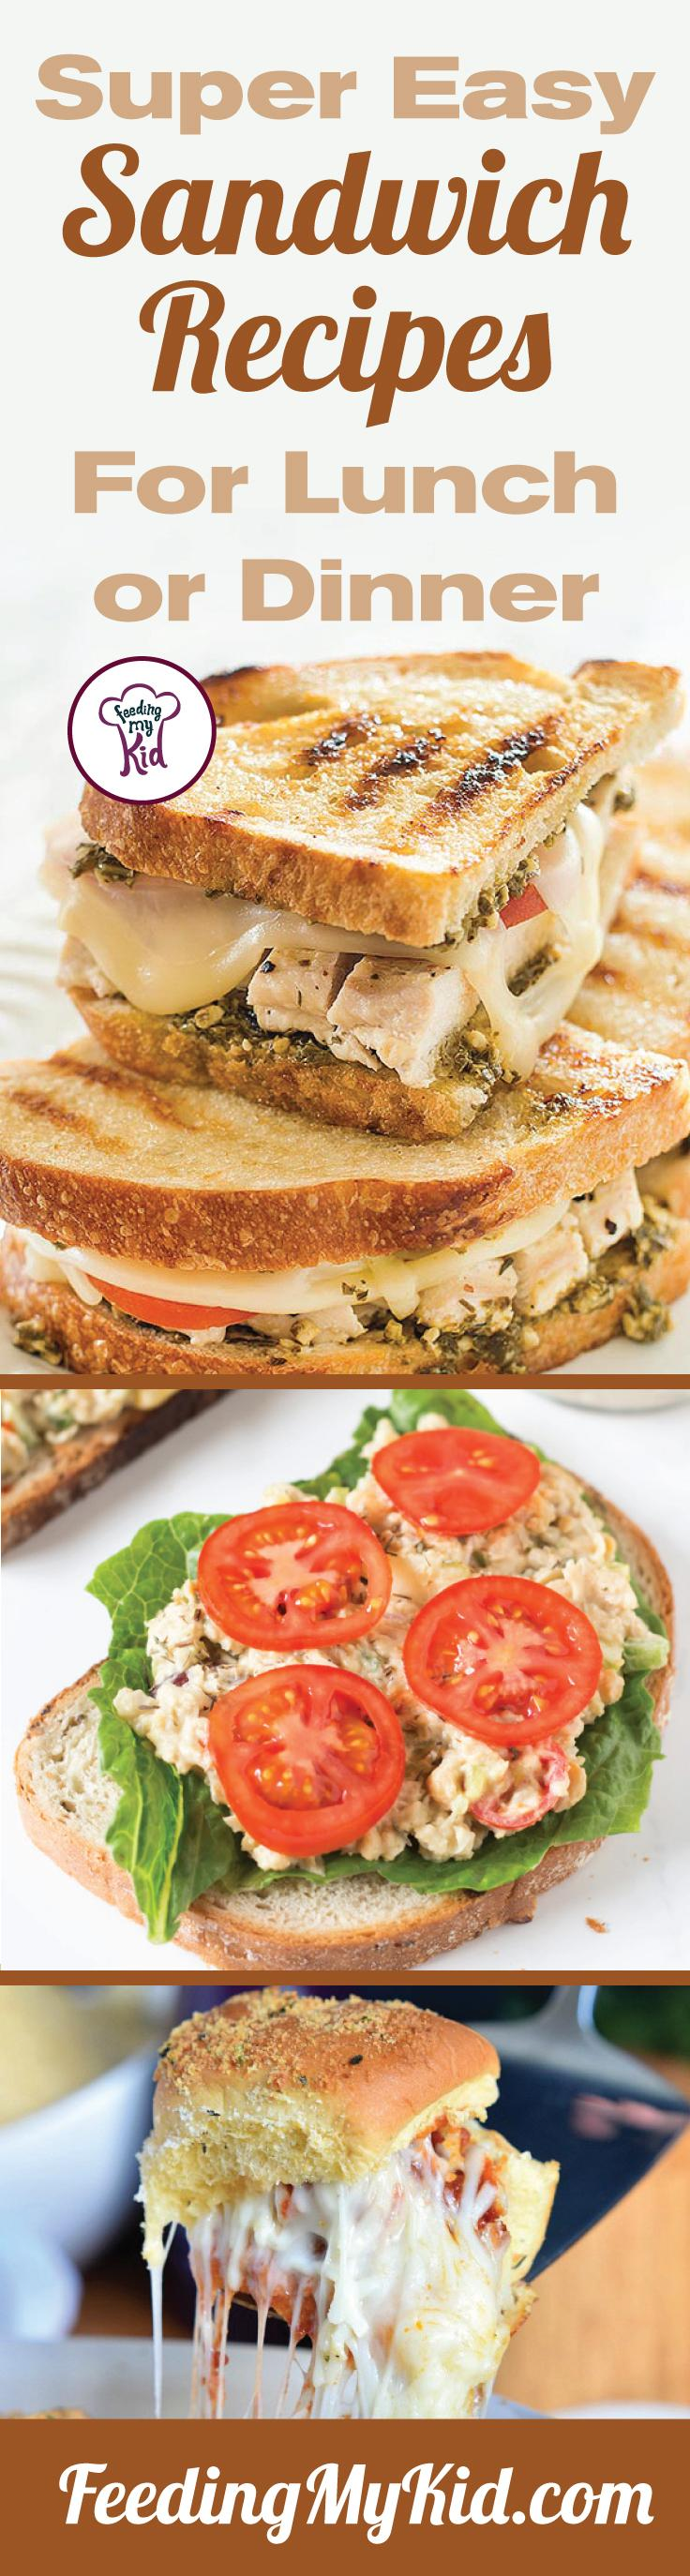 Try these great tasting easy sandwich recipes! They're perfect for any occasion. Feeding My Kid is filled with all the information you need about how to raise your kids, from healthy tips to nutritious recipes. #FeedingMyKid #sandwichrecipes #lunch #recipes